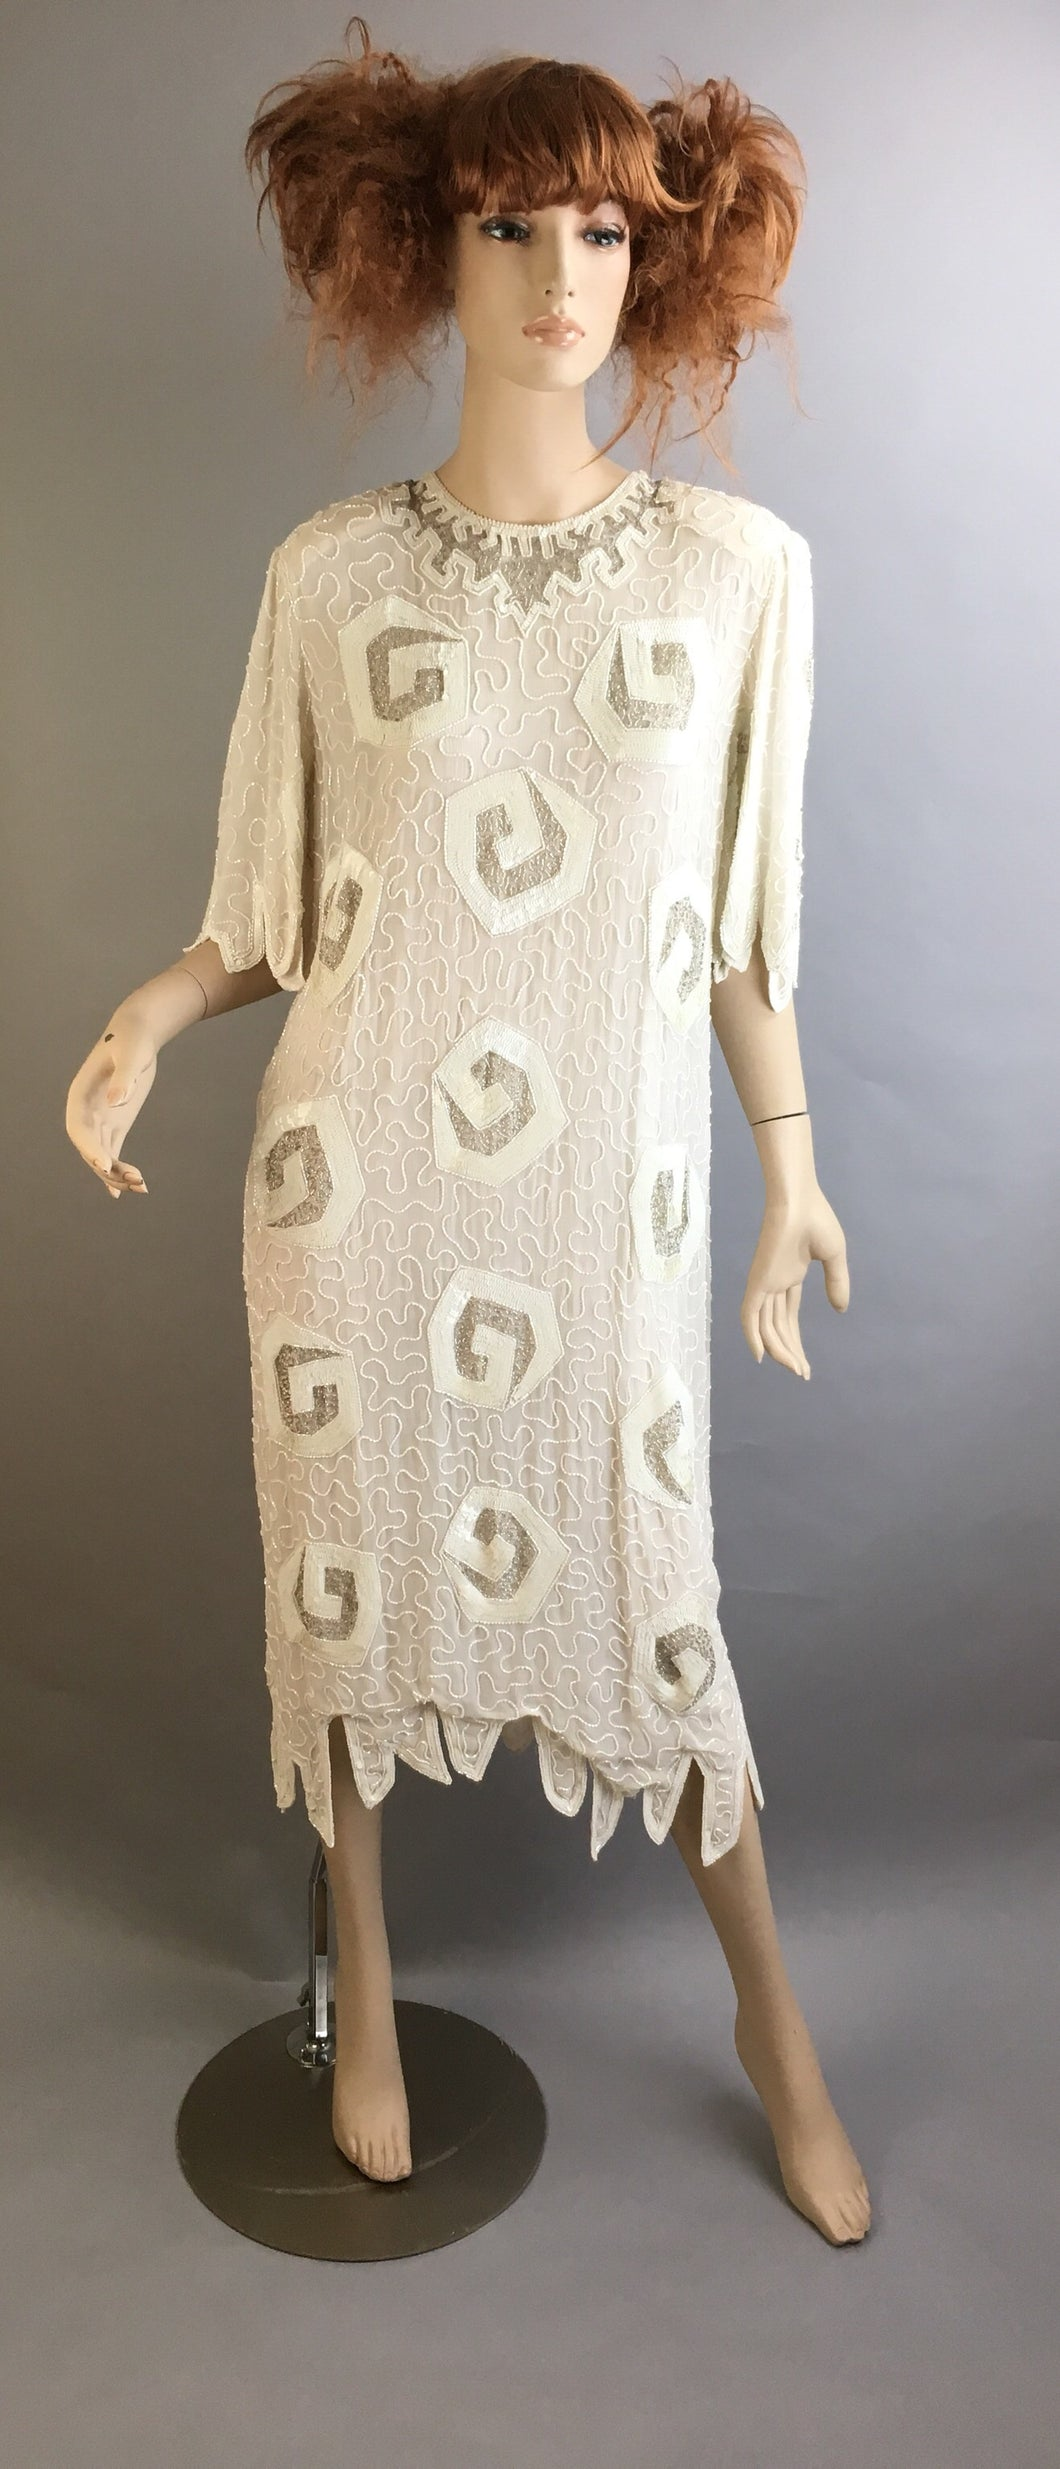 Judith Ann Creations White Dress// Vintage Beaded Dynasty Dress// Designer 80s Vintage Beaded Dress (F1)